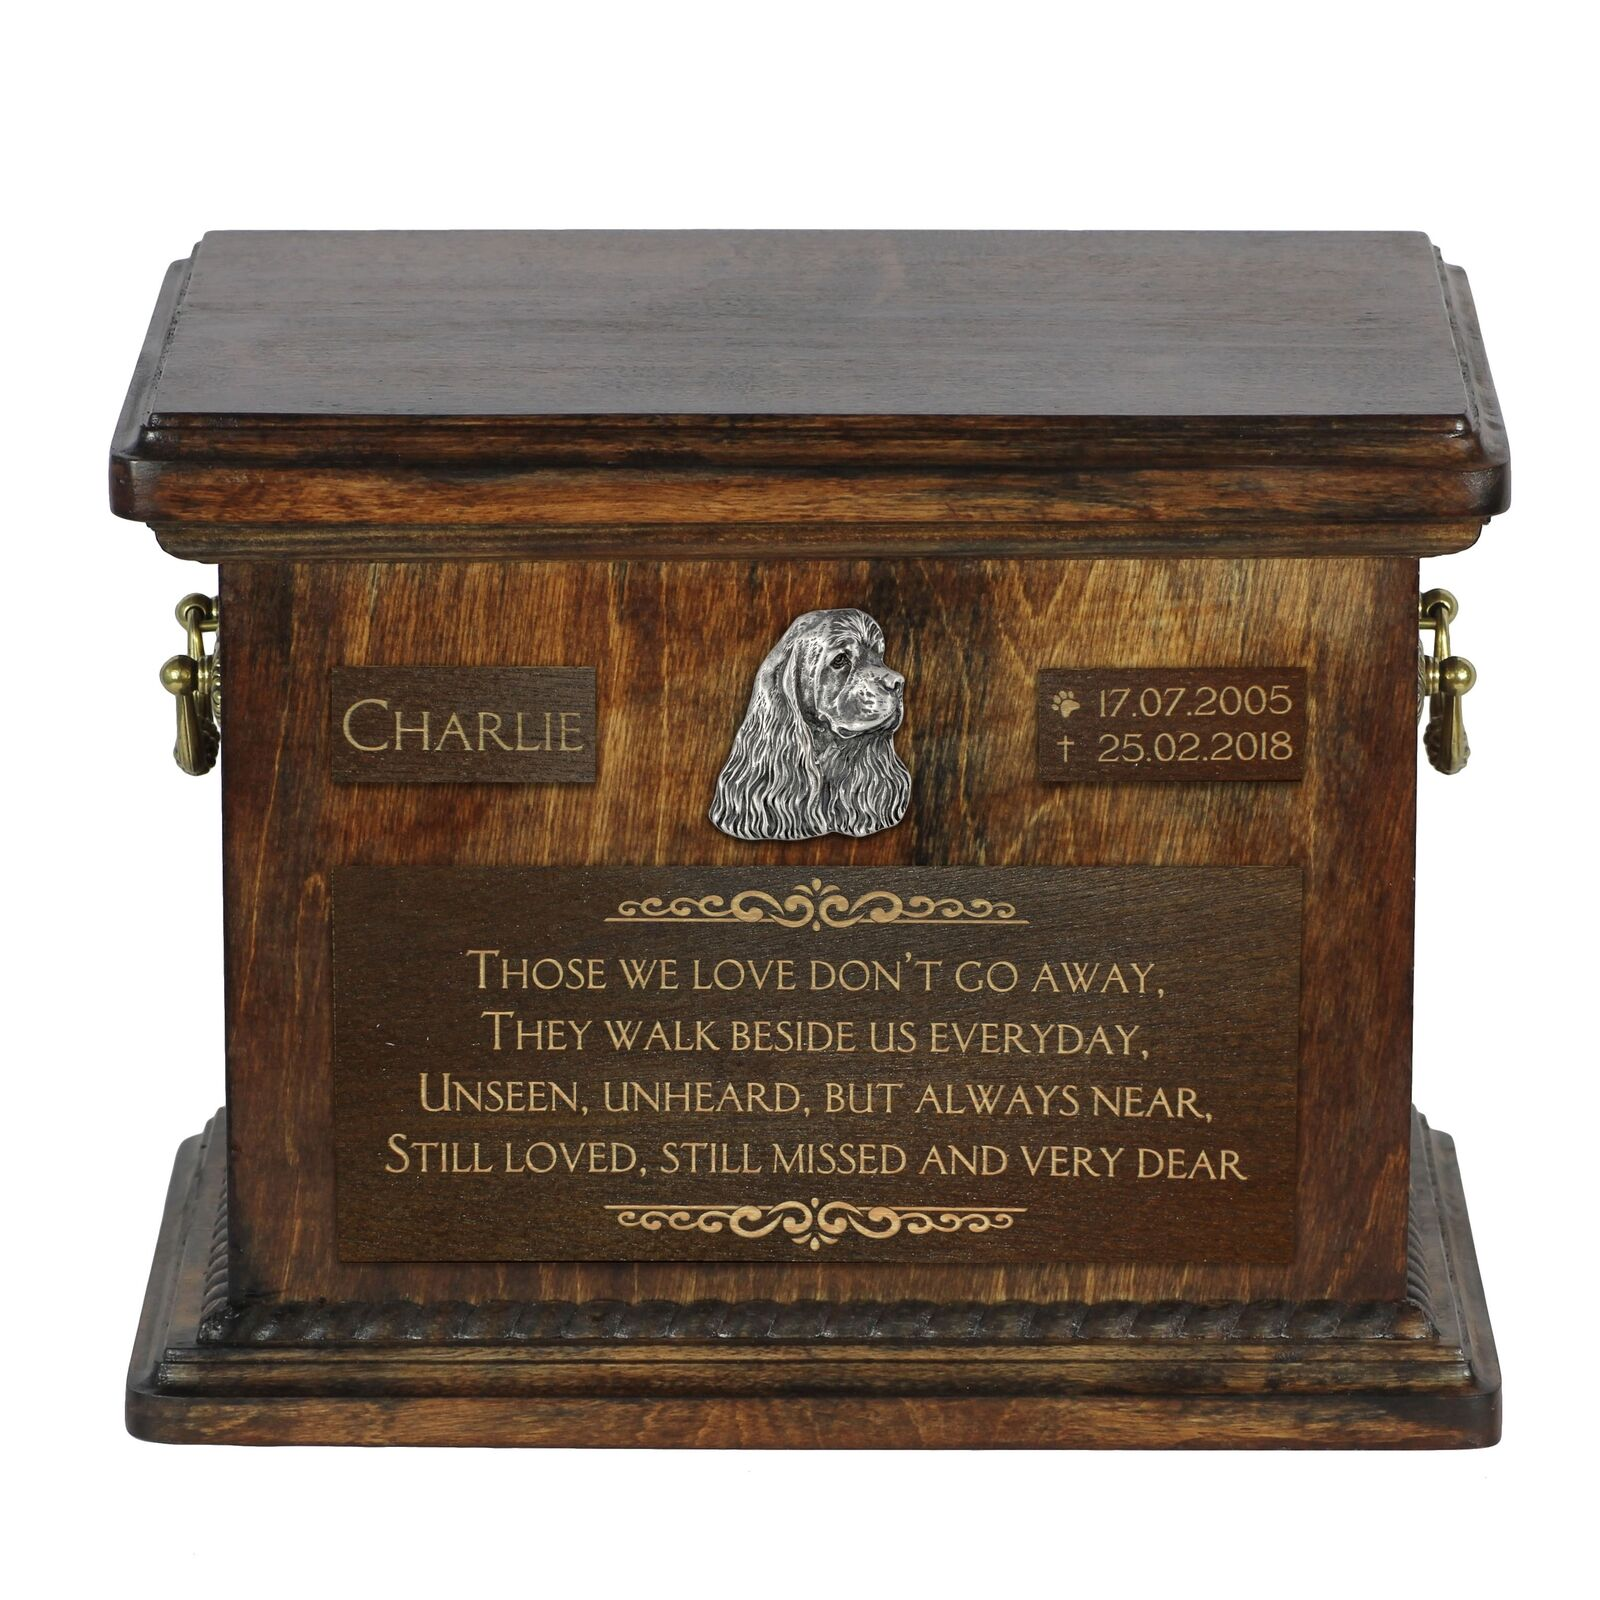 Cocker Spaniel - Urn for dog's ashes with image of a dog, Art Dog